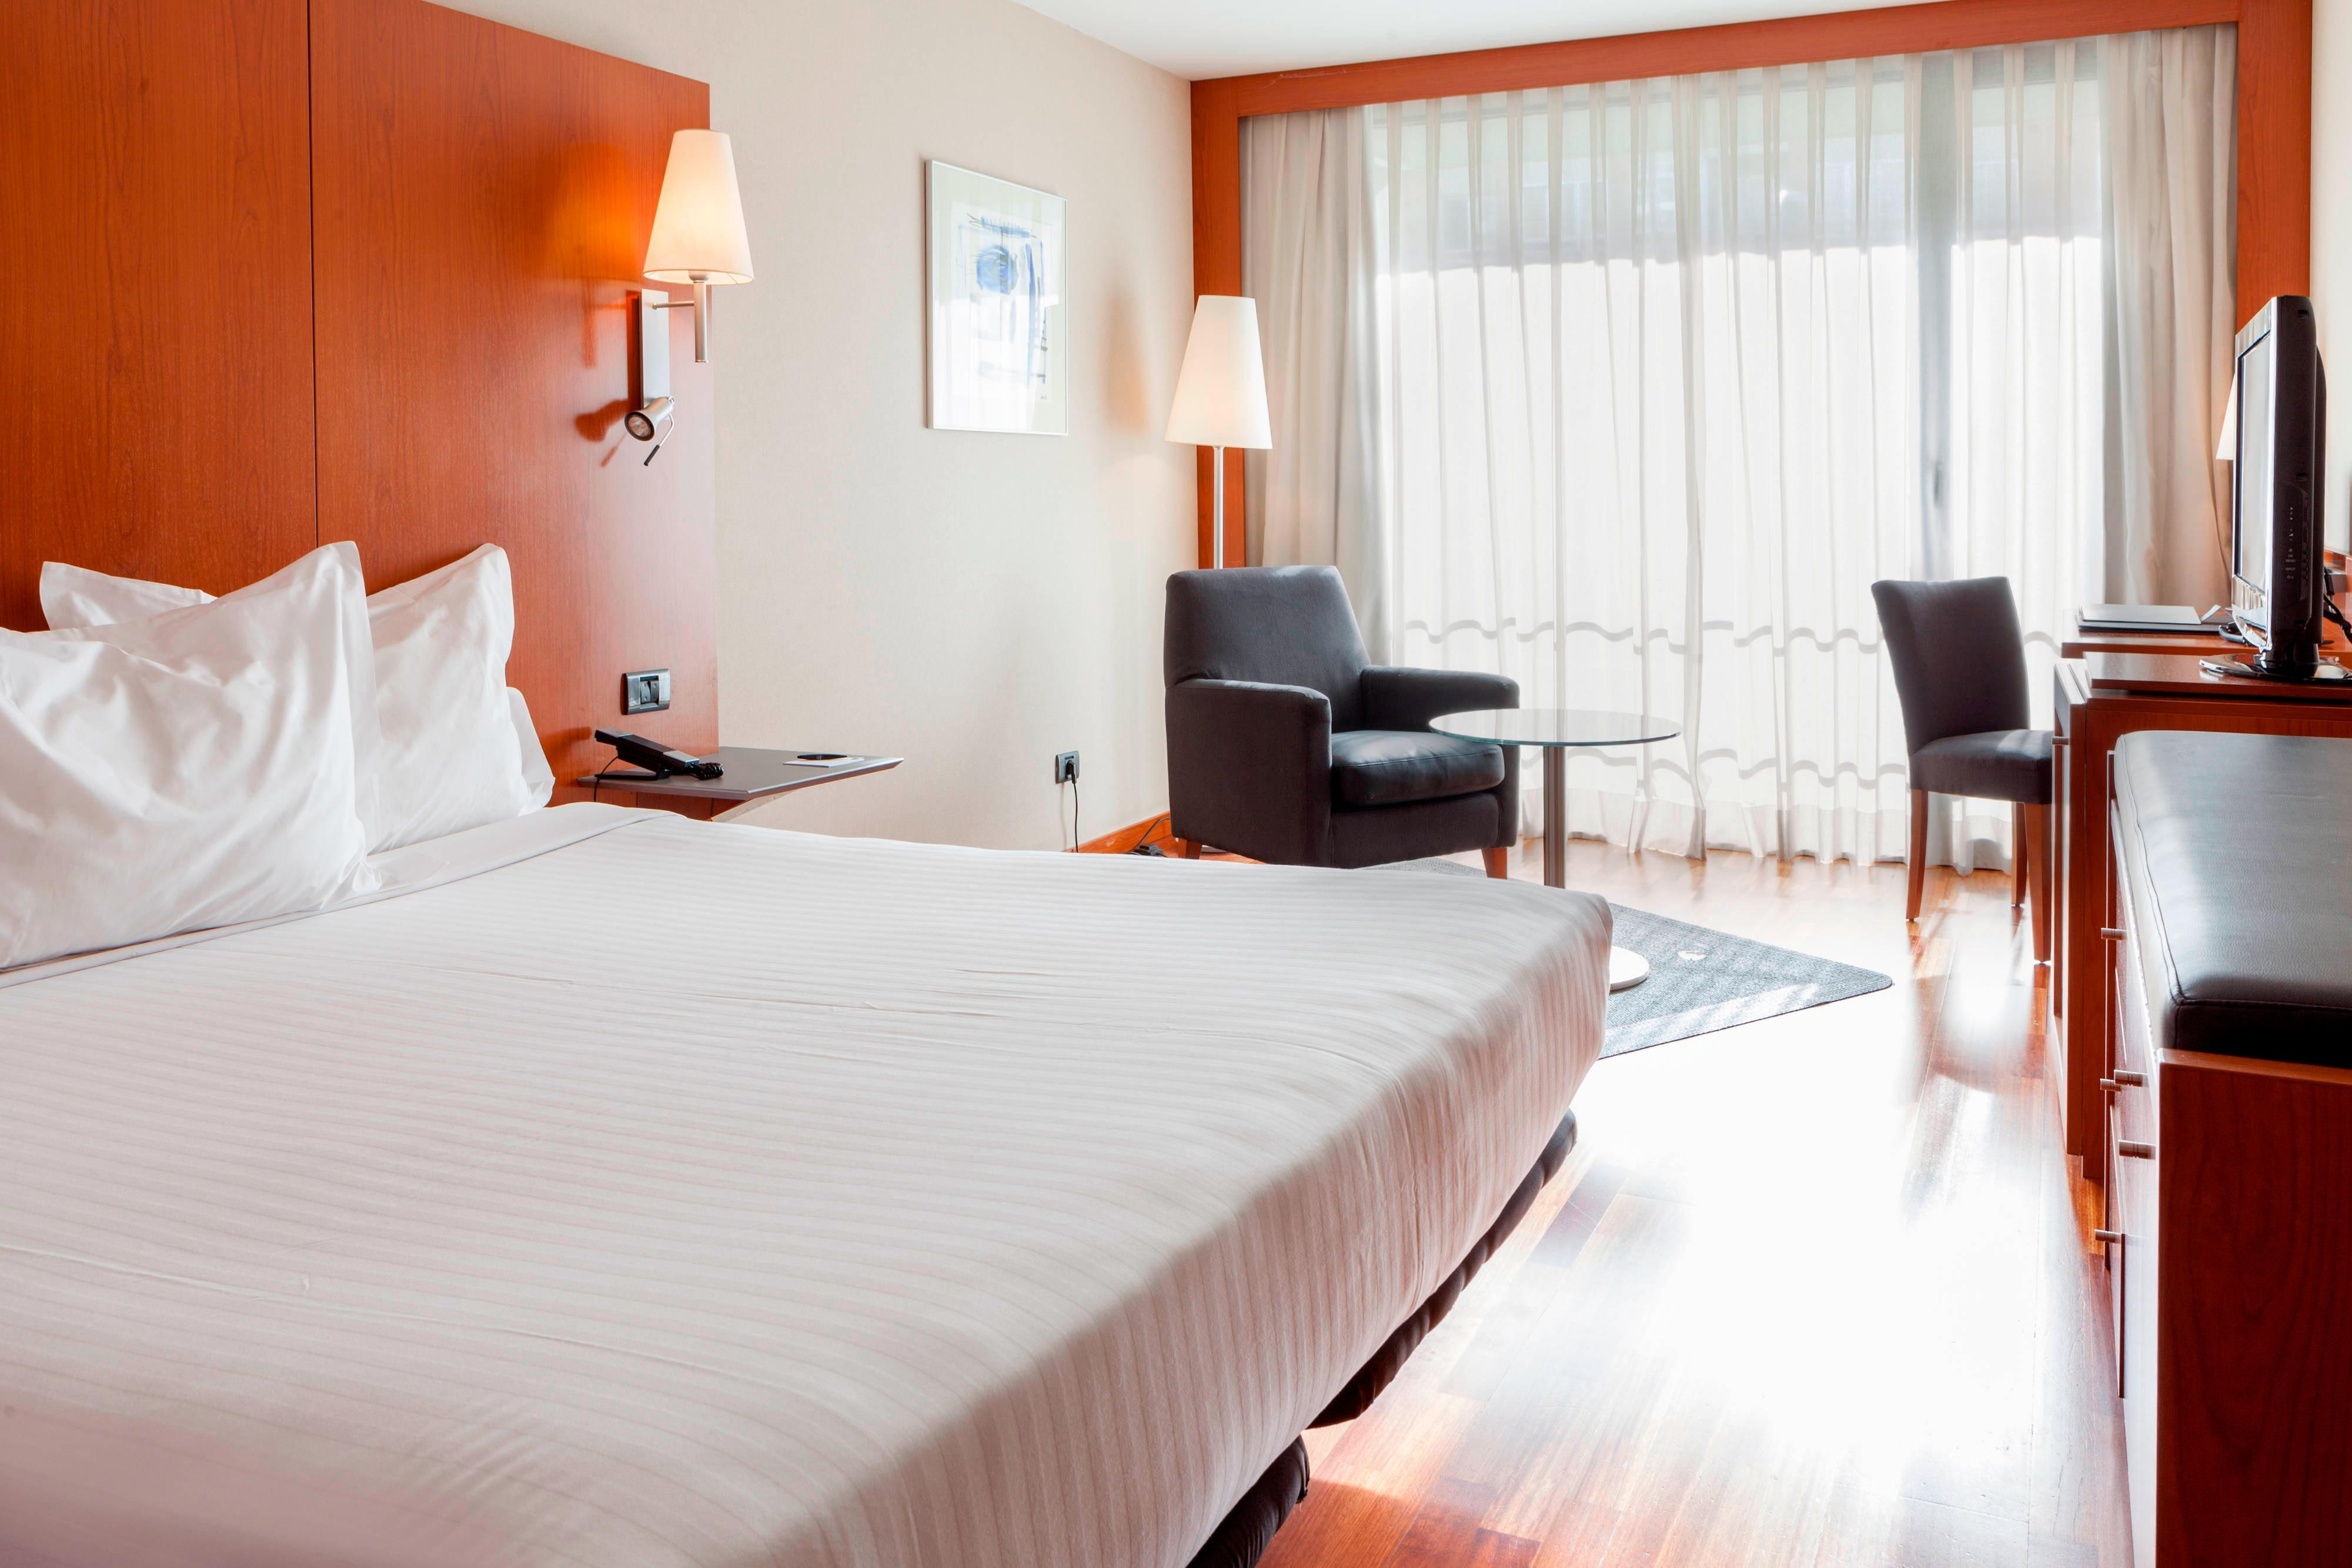 Guest Room Amenities At Ac La Rioja Hotels In Logrono Spain